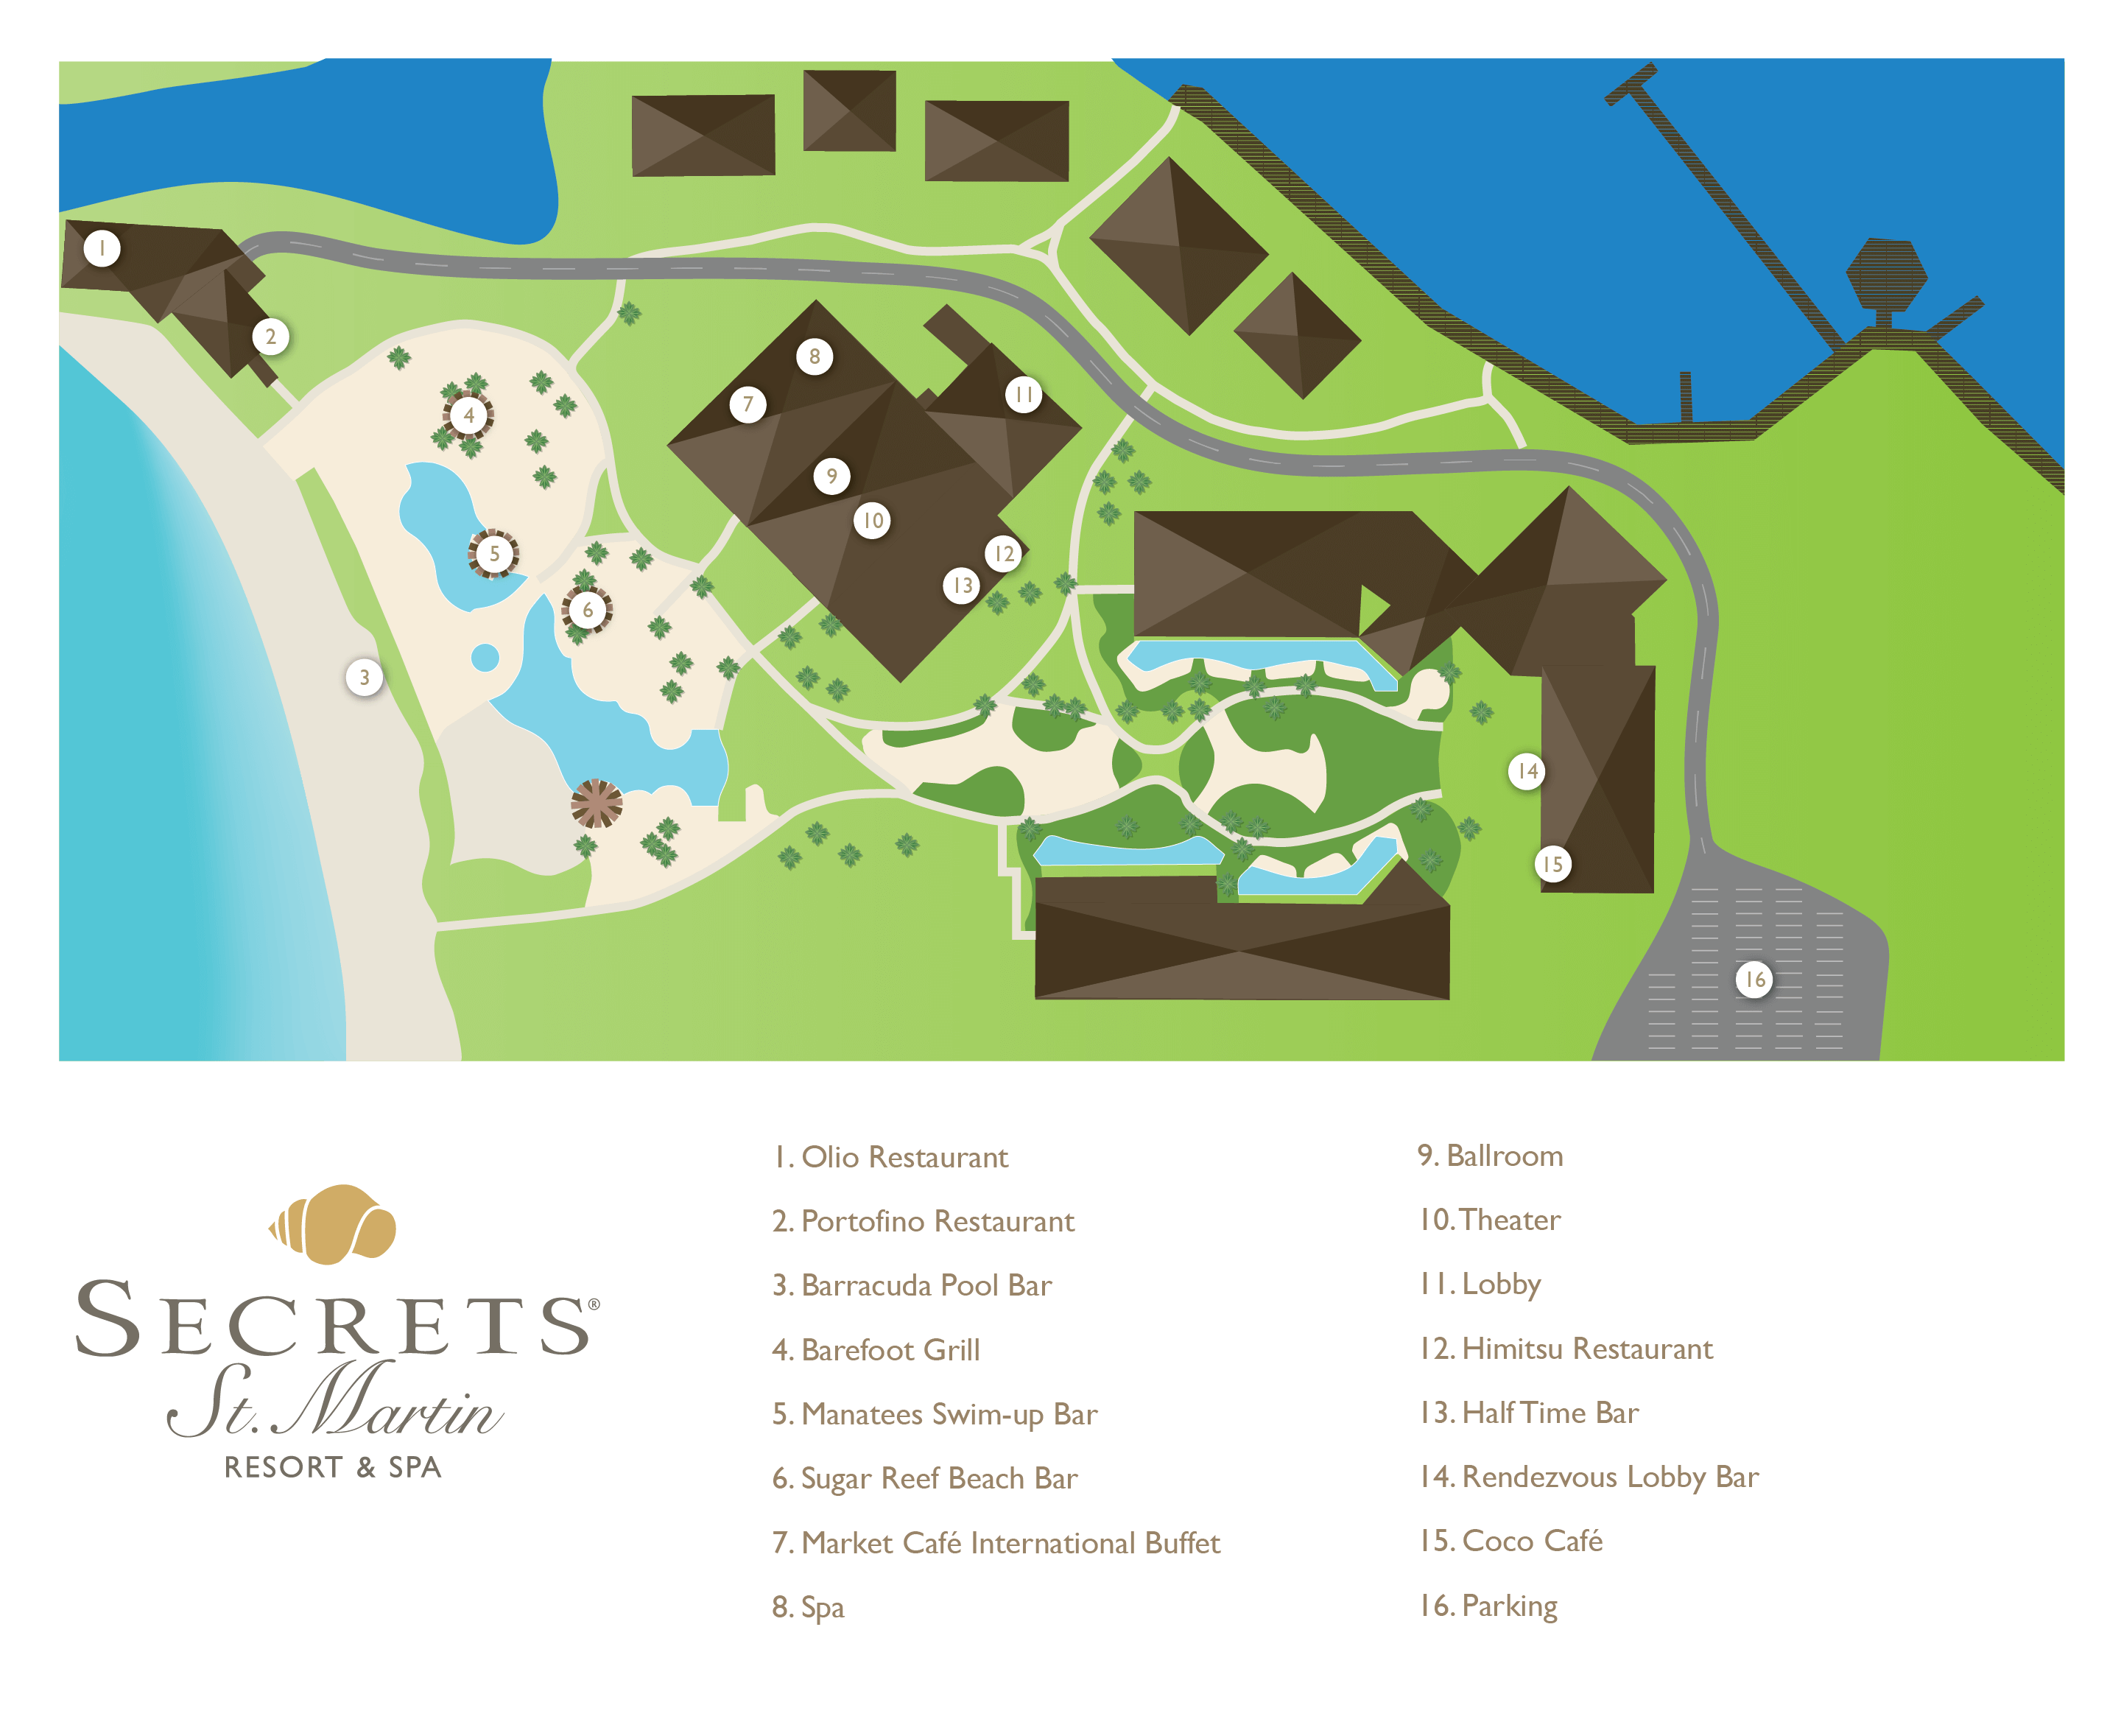 Secrets St. Martin Resort & Spa